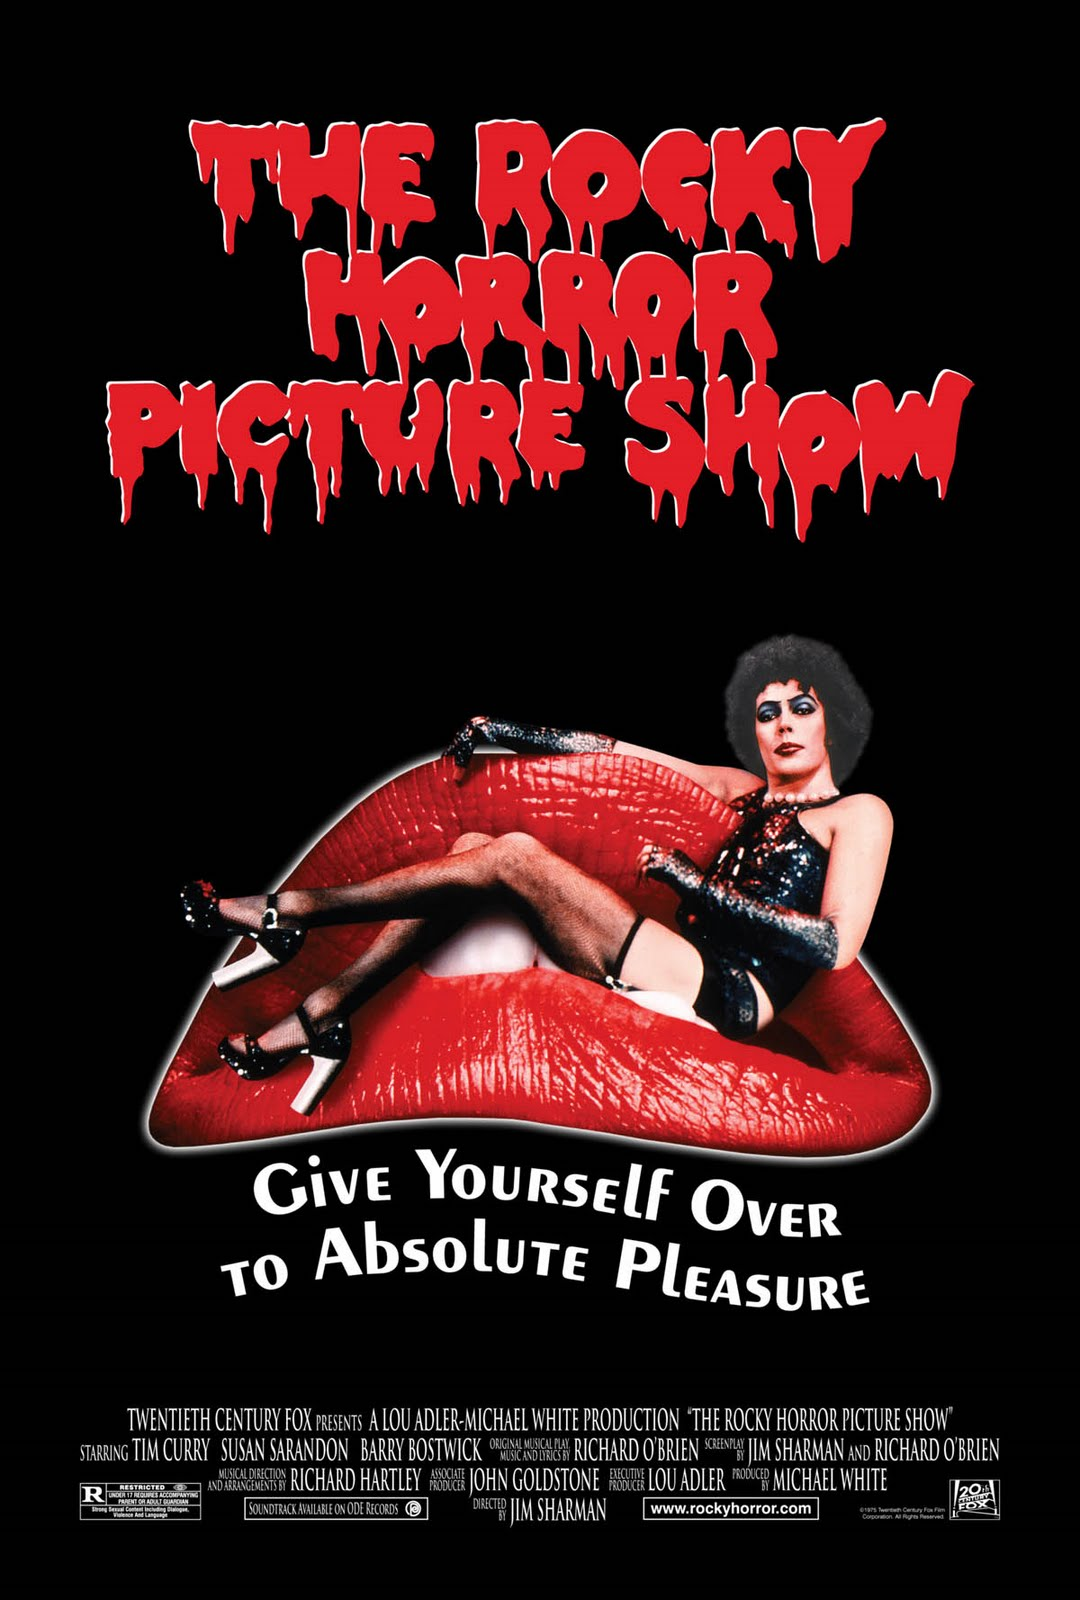 The film poster showing Frank N. Furter (Tim Curry) lounging in the oversized lips of a mouth.